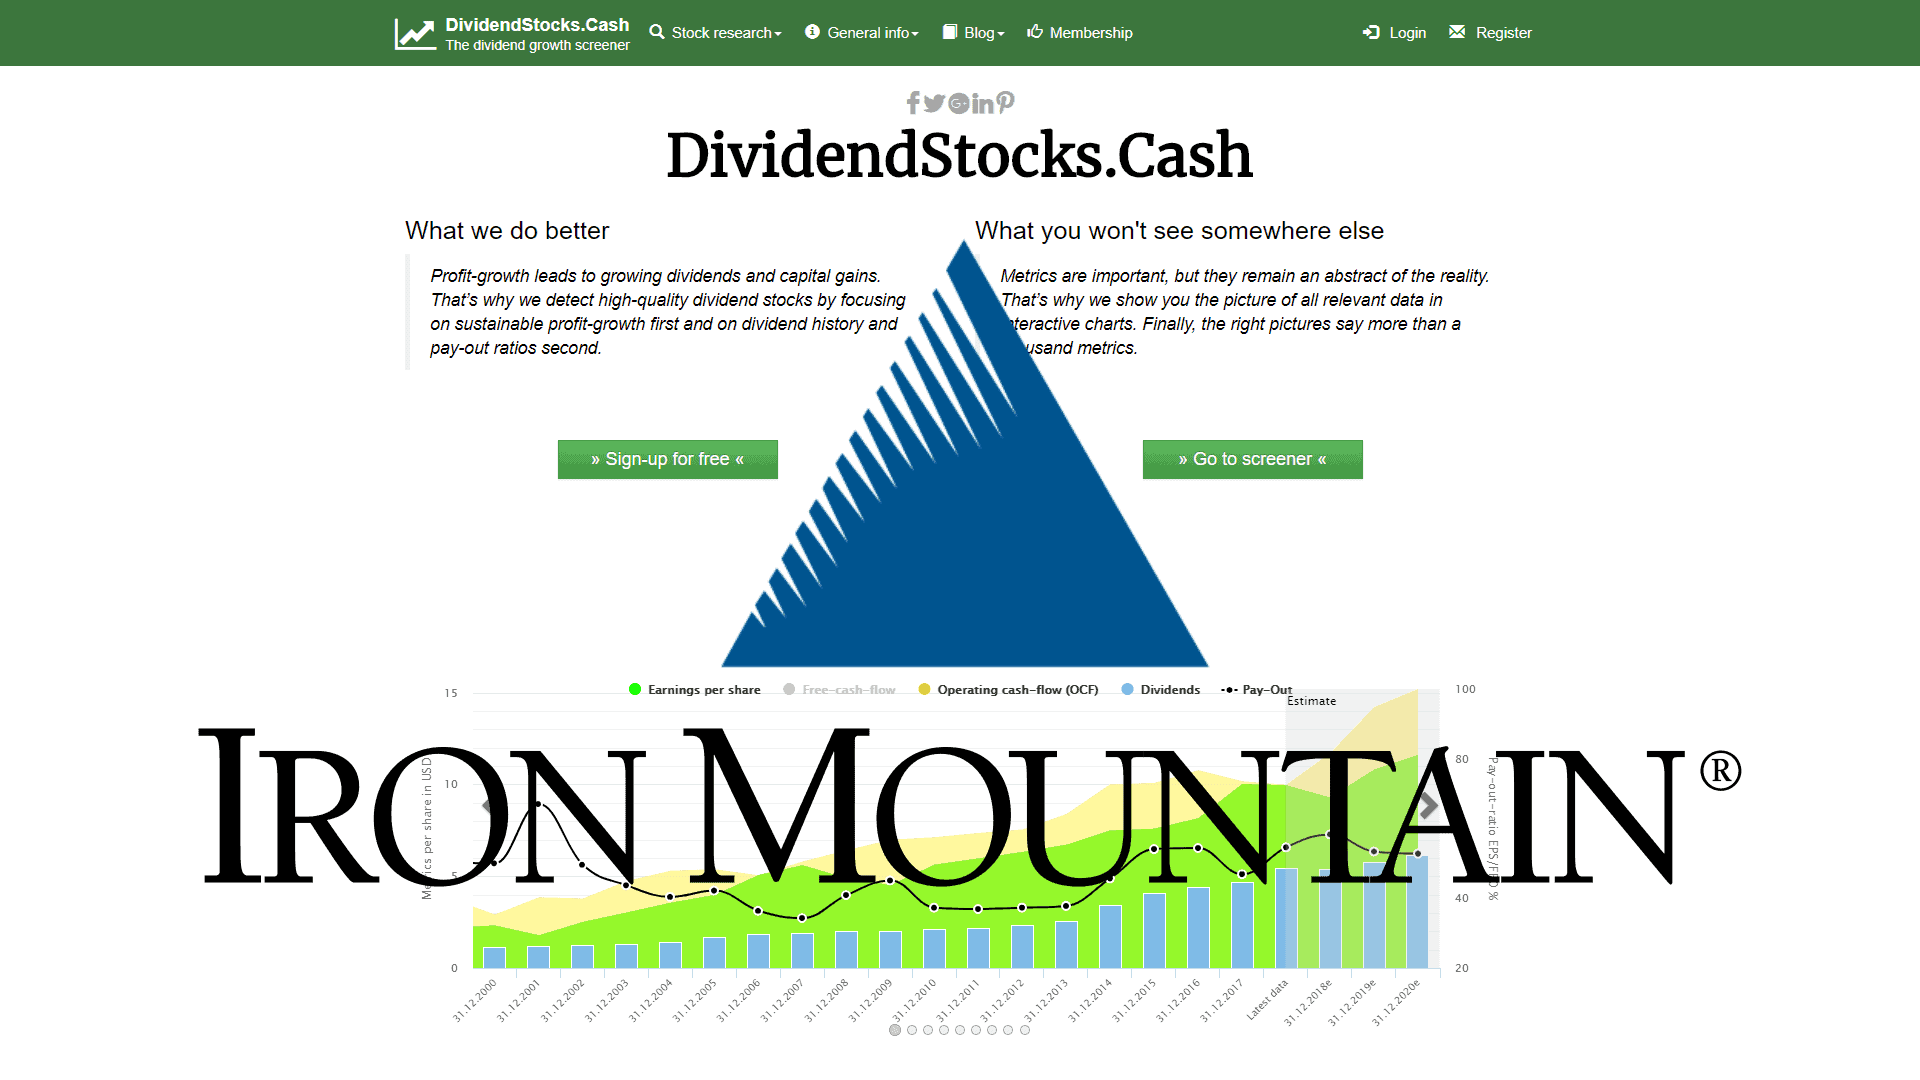 Iron Mountain: Dividend giant with imperfections